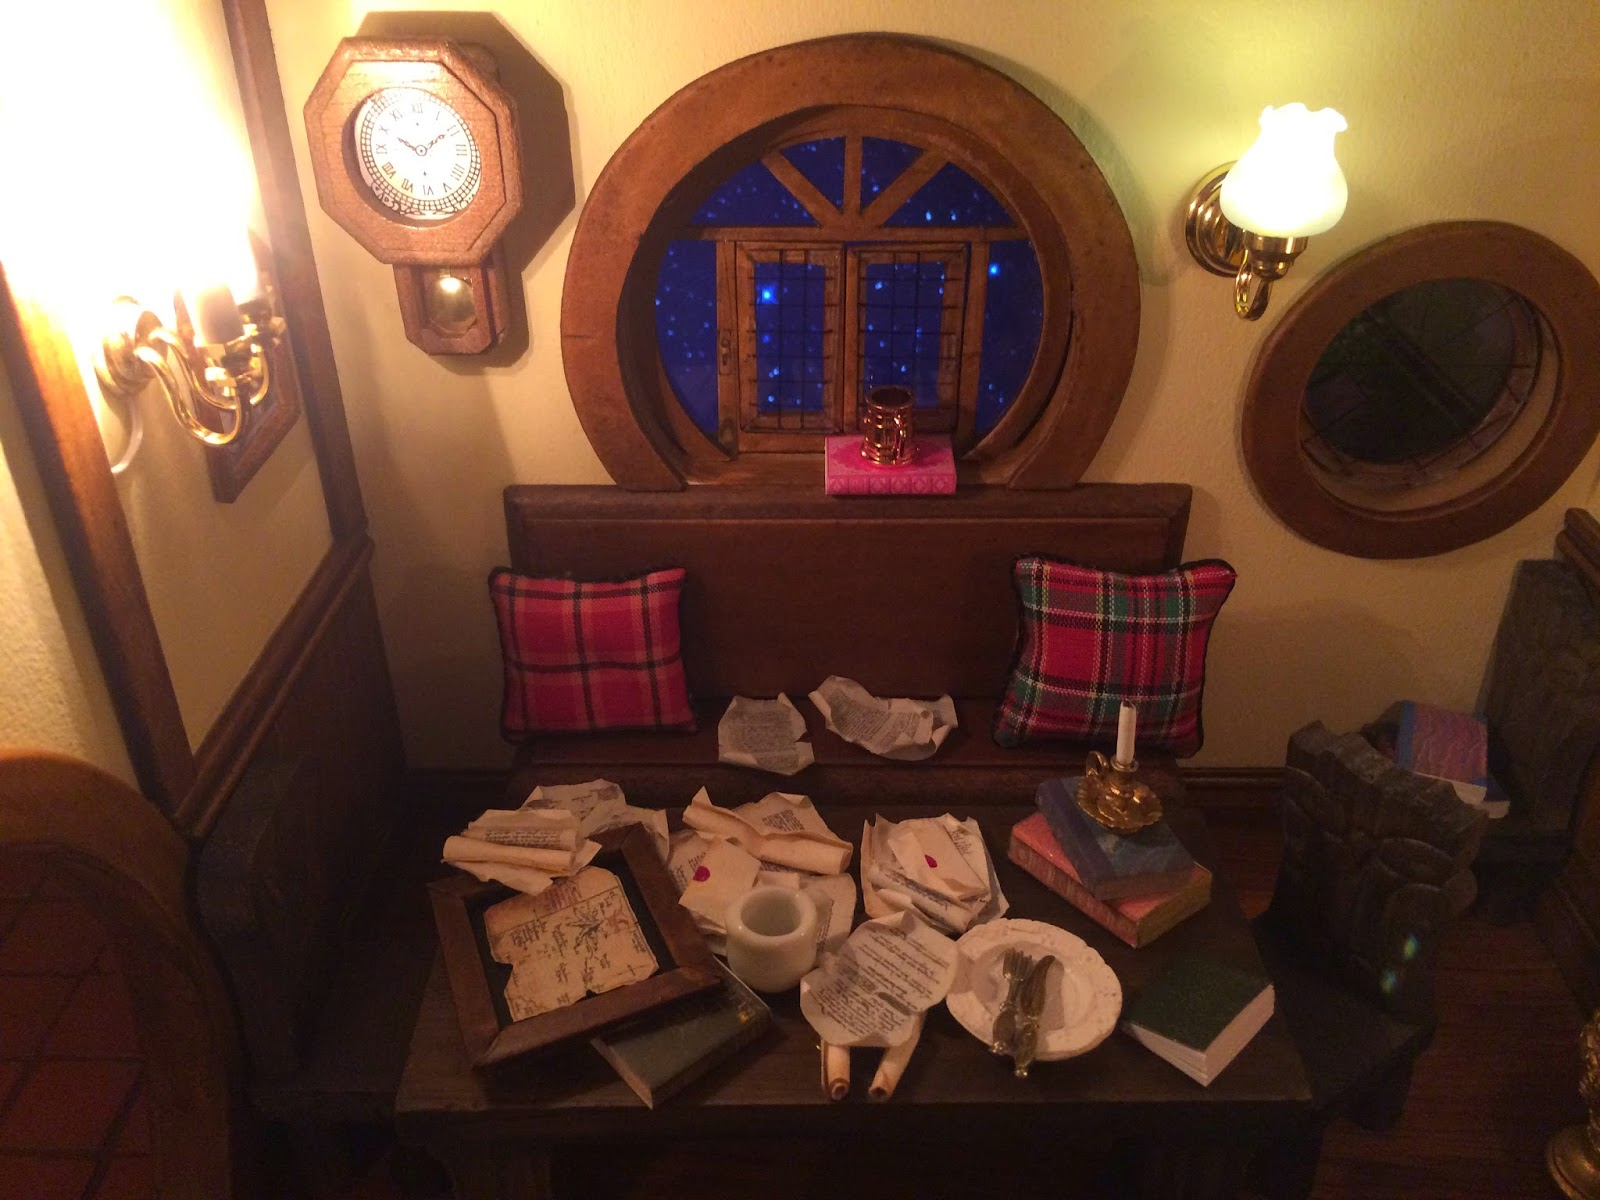 My Hobbit Hole Bag End Parlour